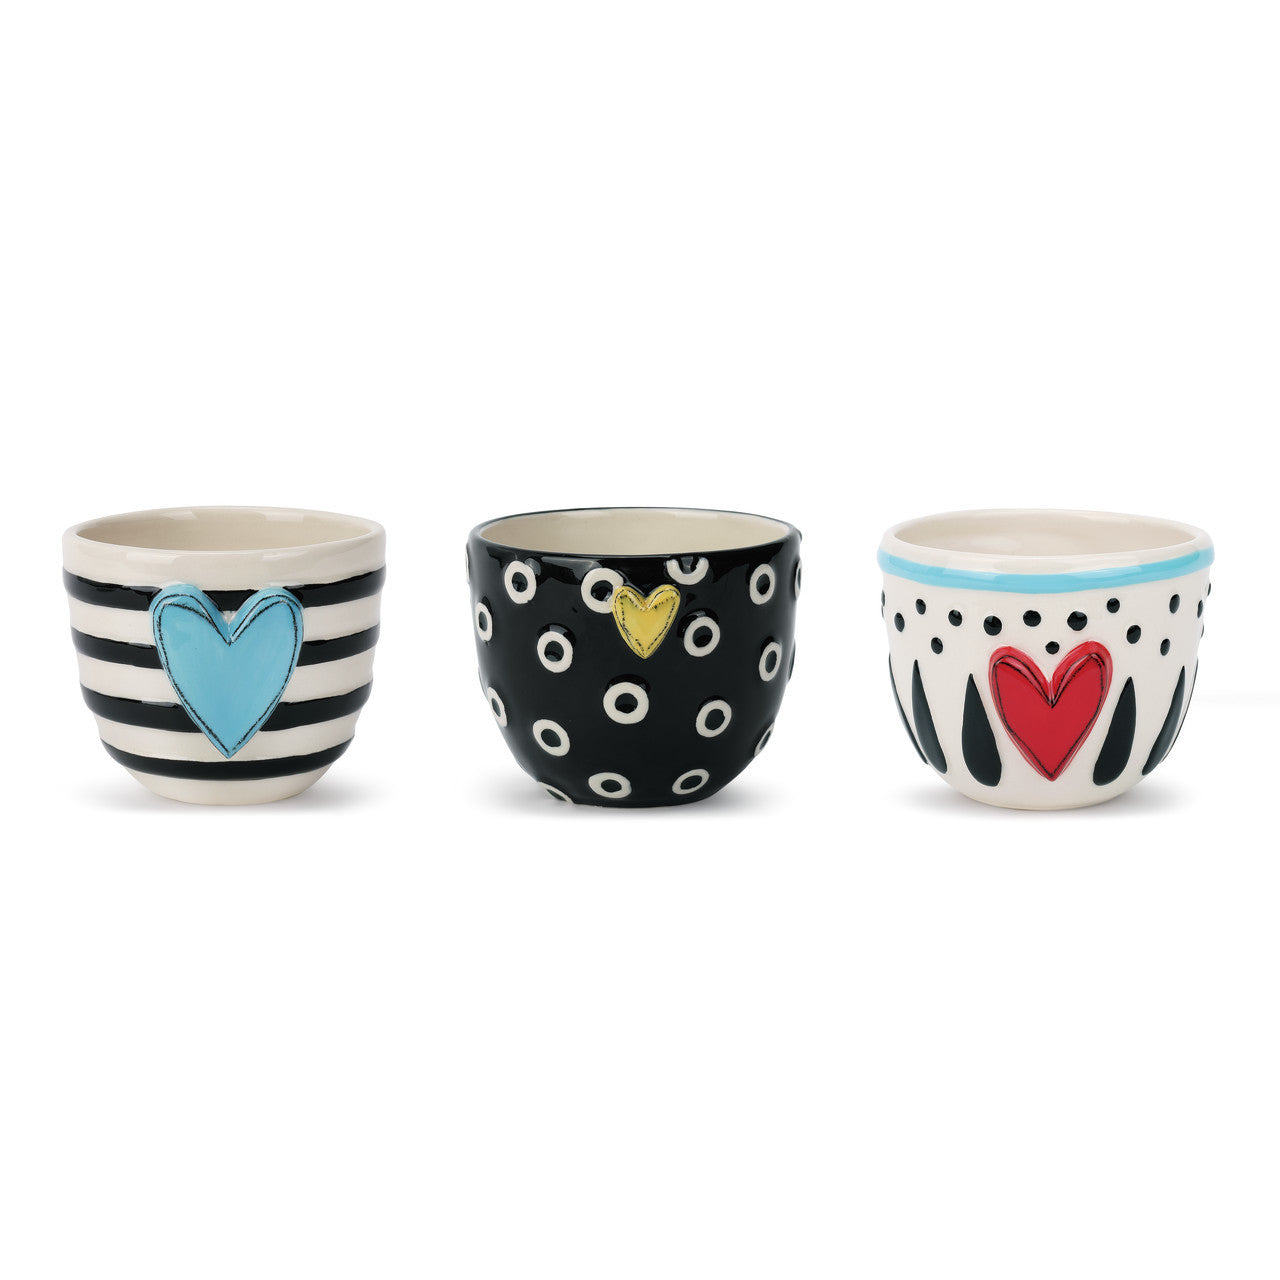 Heart Bowls with Stripes, Dots and Circles